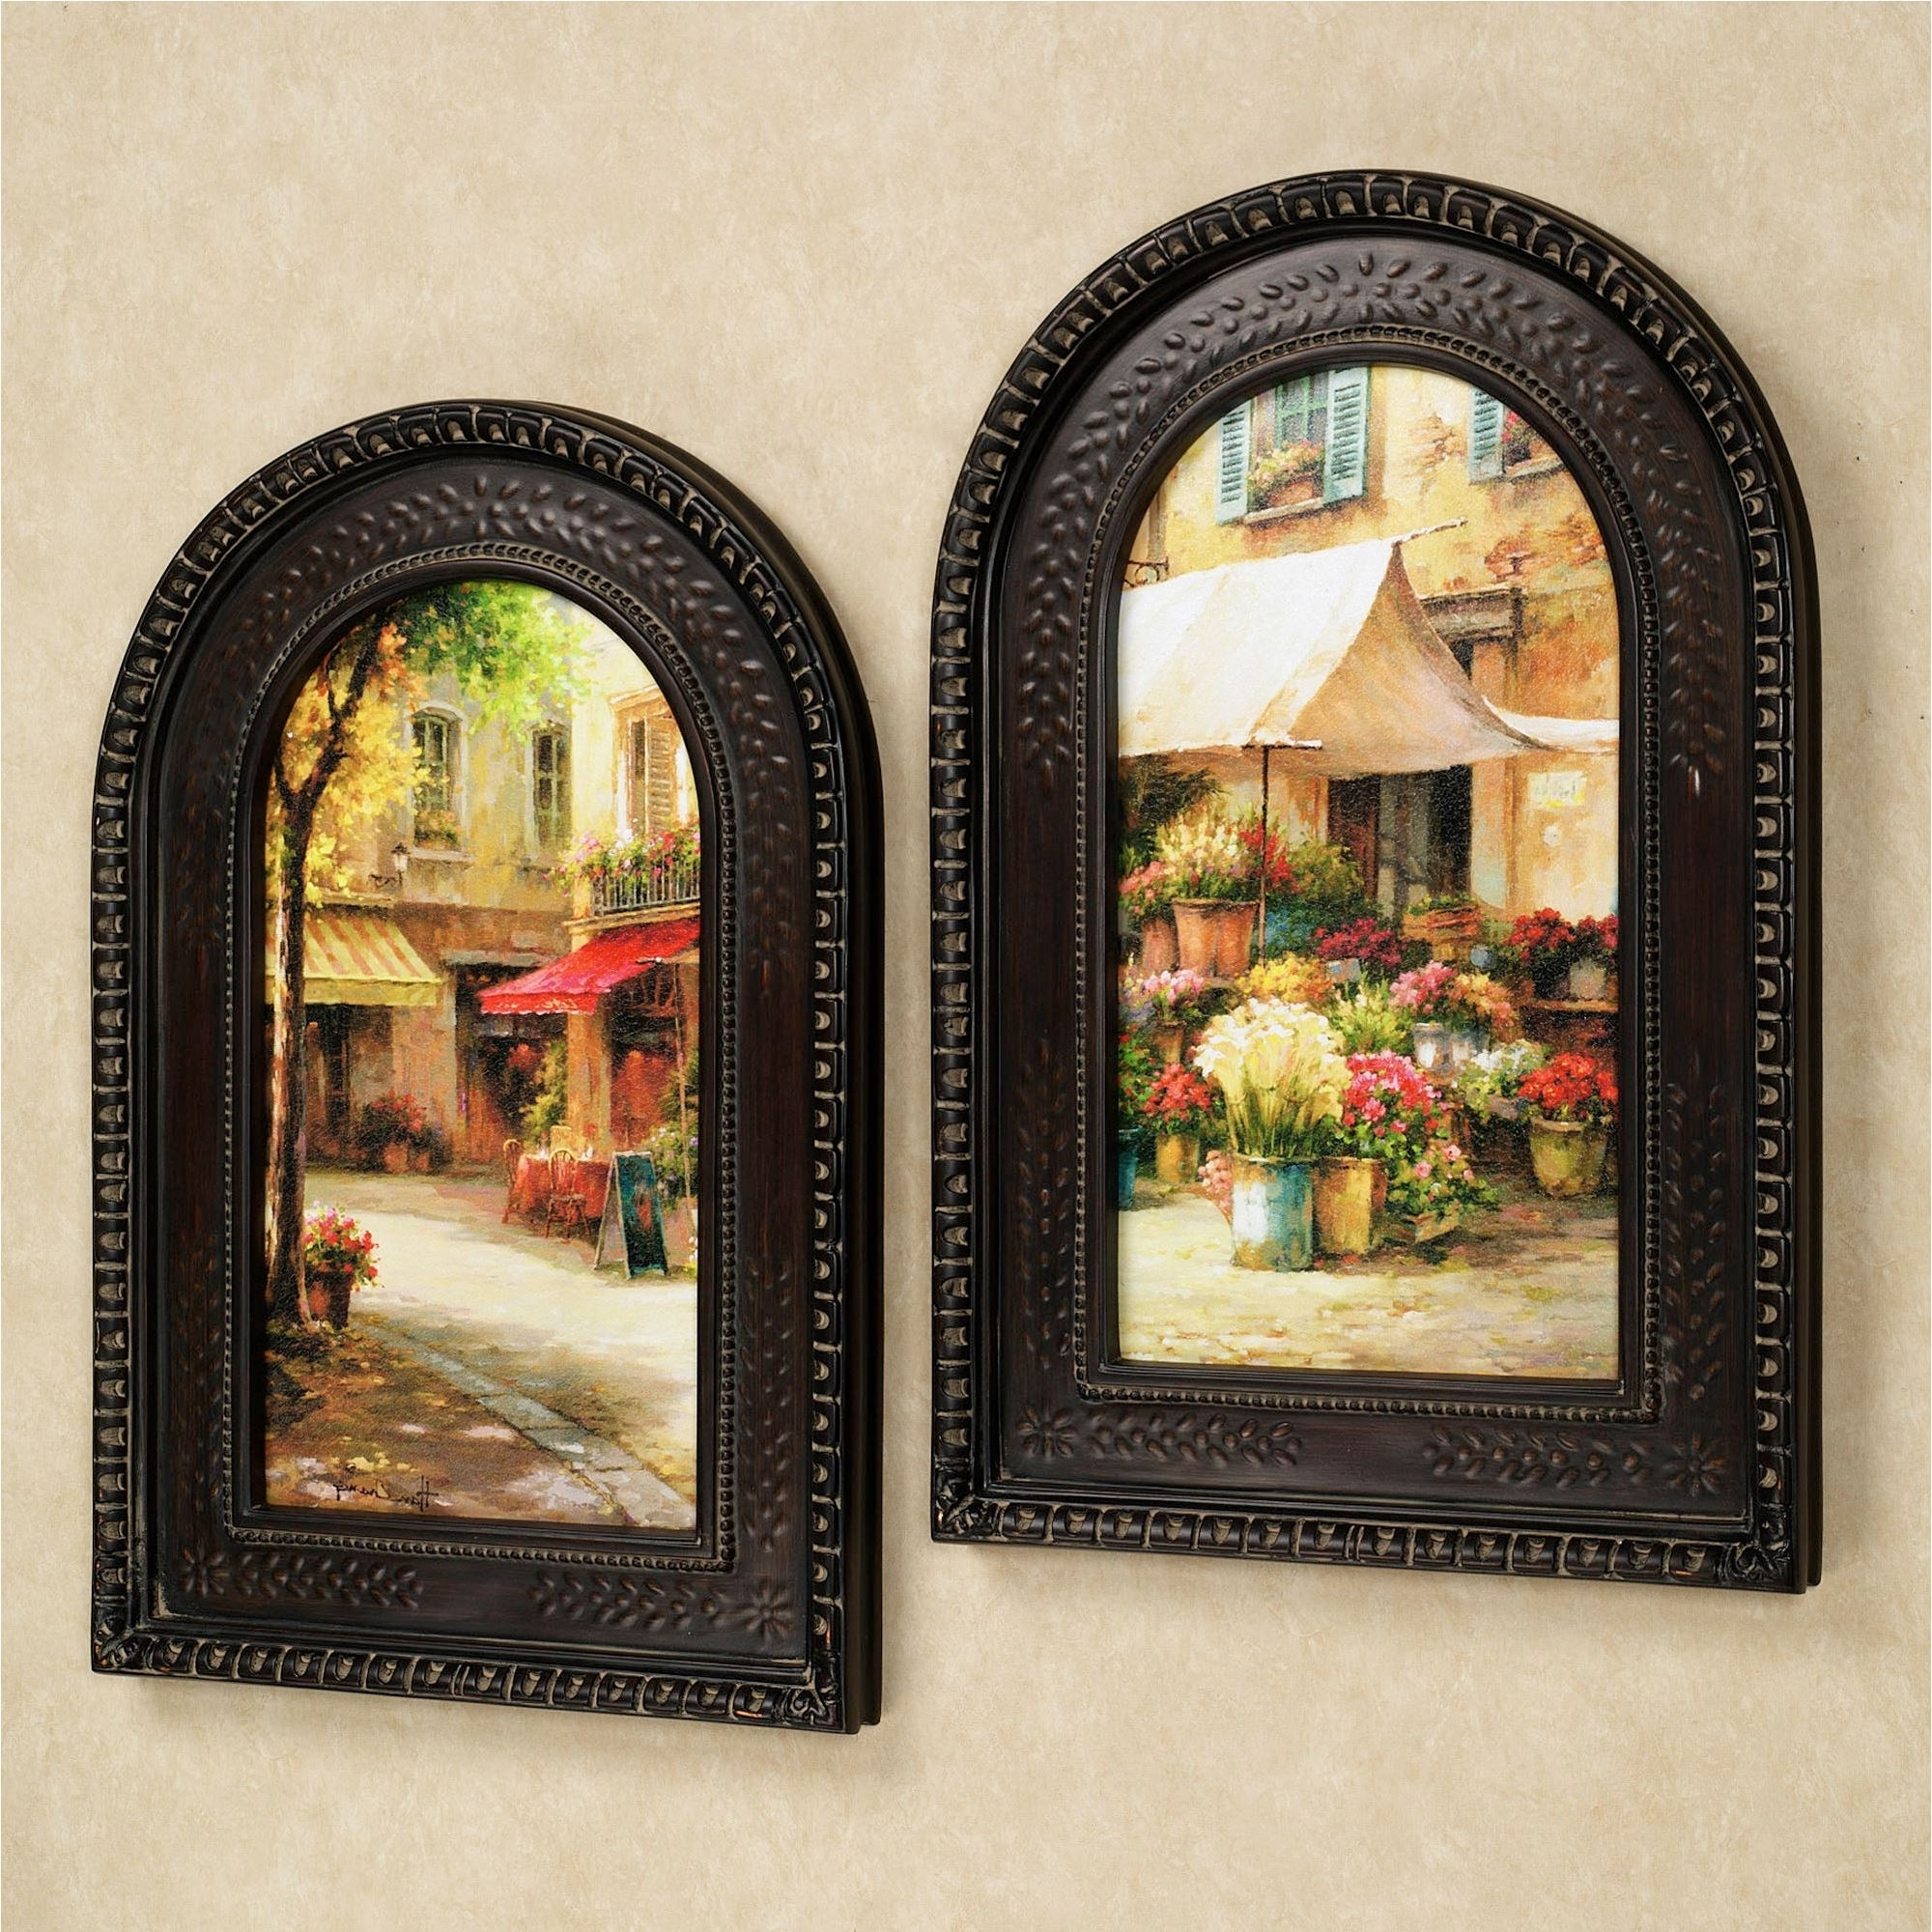 Framed Wall Art Within Well Known The Flower Market Arched Framed Wall Art Set (View 15 of 15)